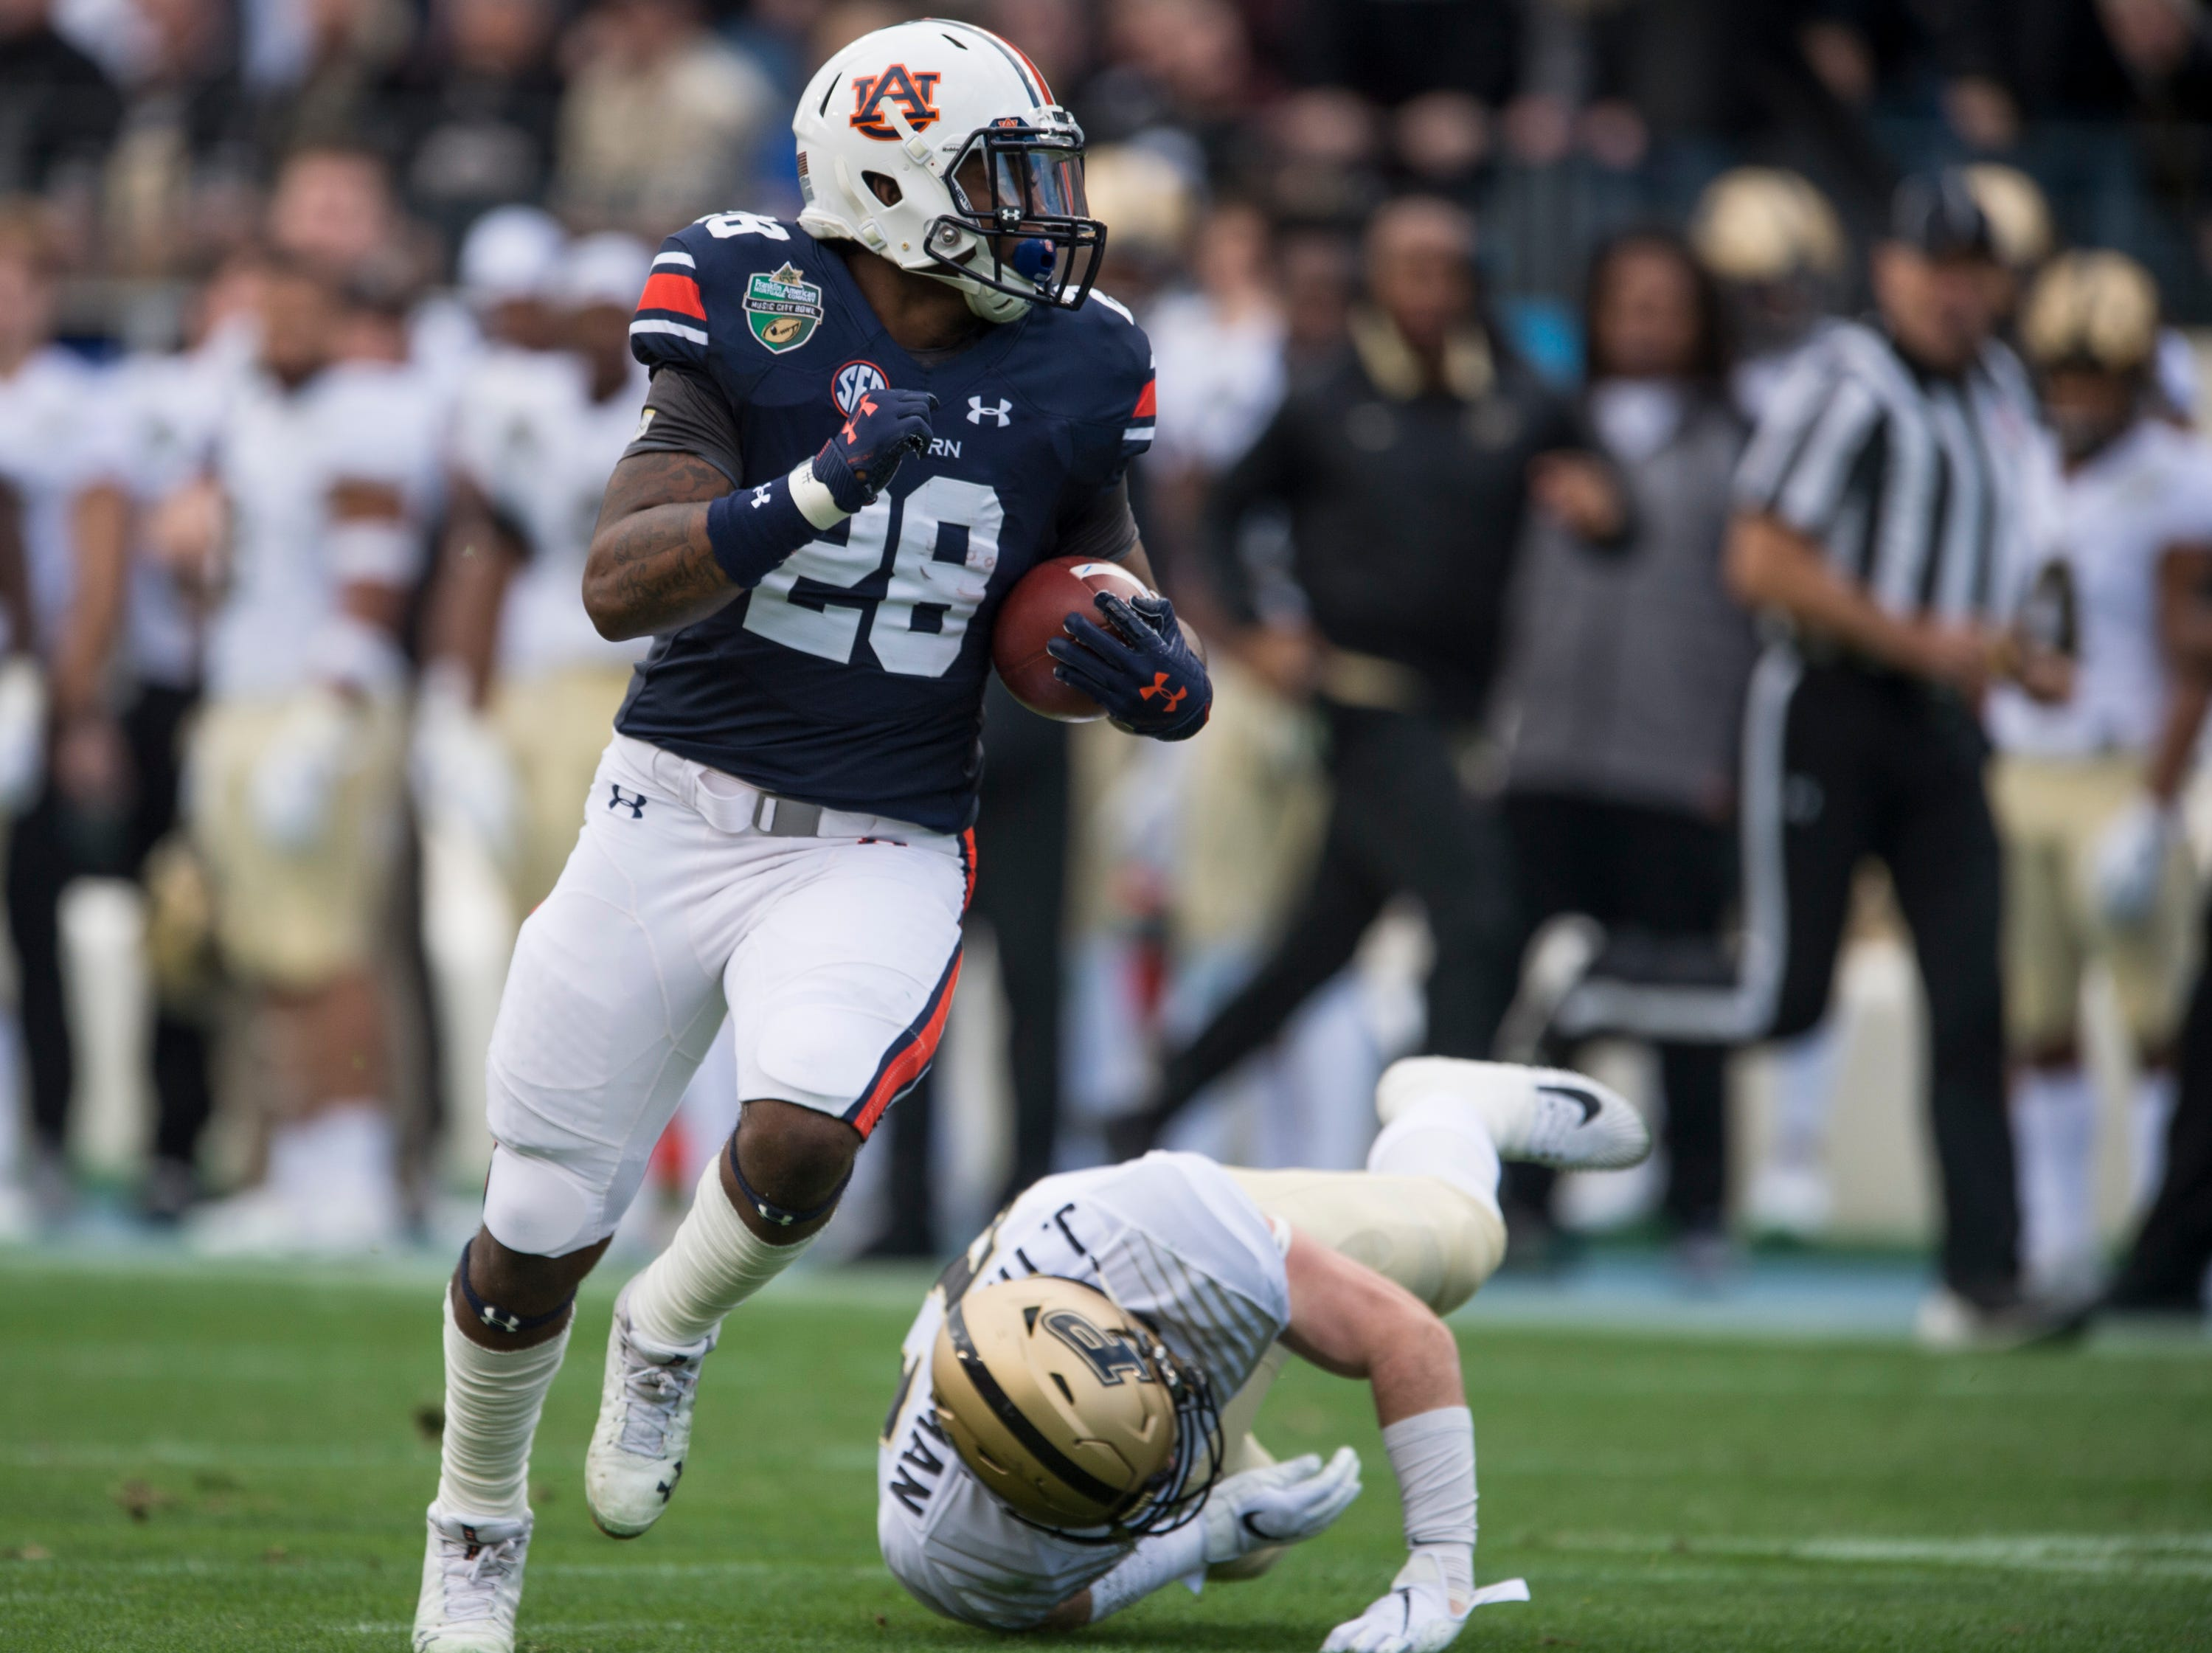 Auburn running back JaTarvious Whitlow (28) breaks free after catching the ball and runs it in for a touchdown during the Music City Bowl at Nissan Stadium in Nashville, Tenn., on Friday, Dec. 28, 2018. Auburn leads Purdue 56-7 at halftime.